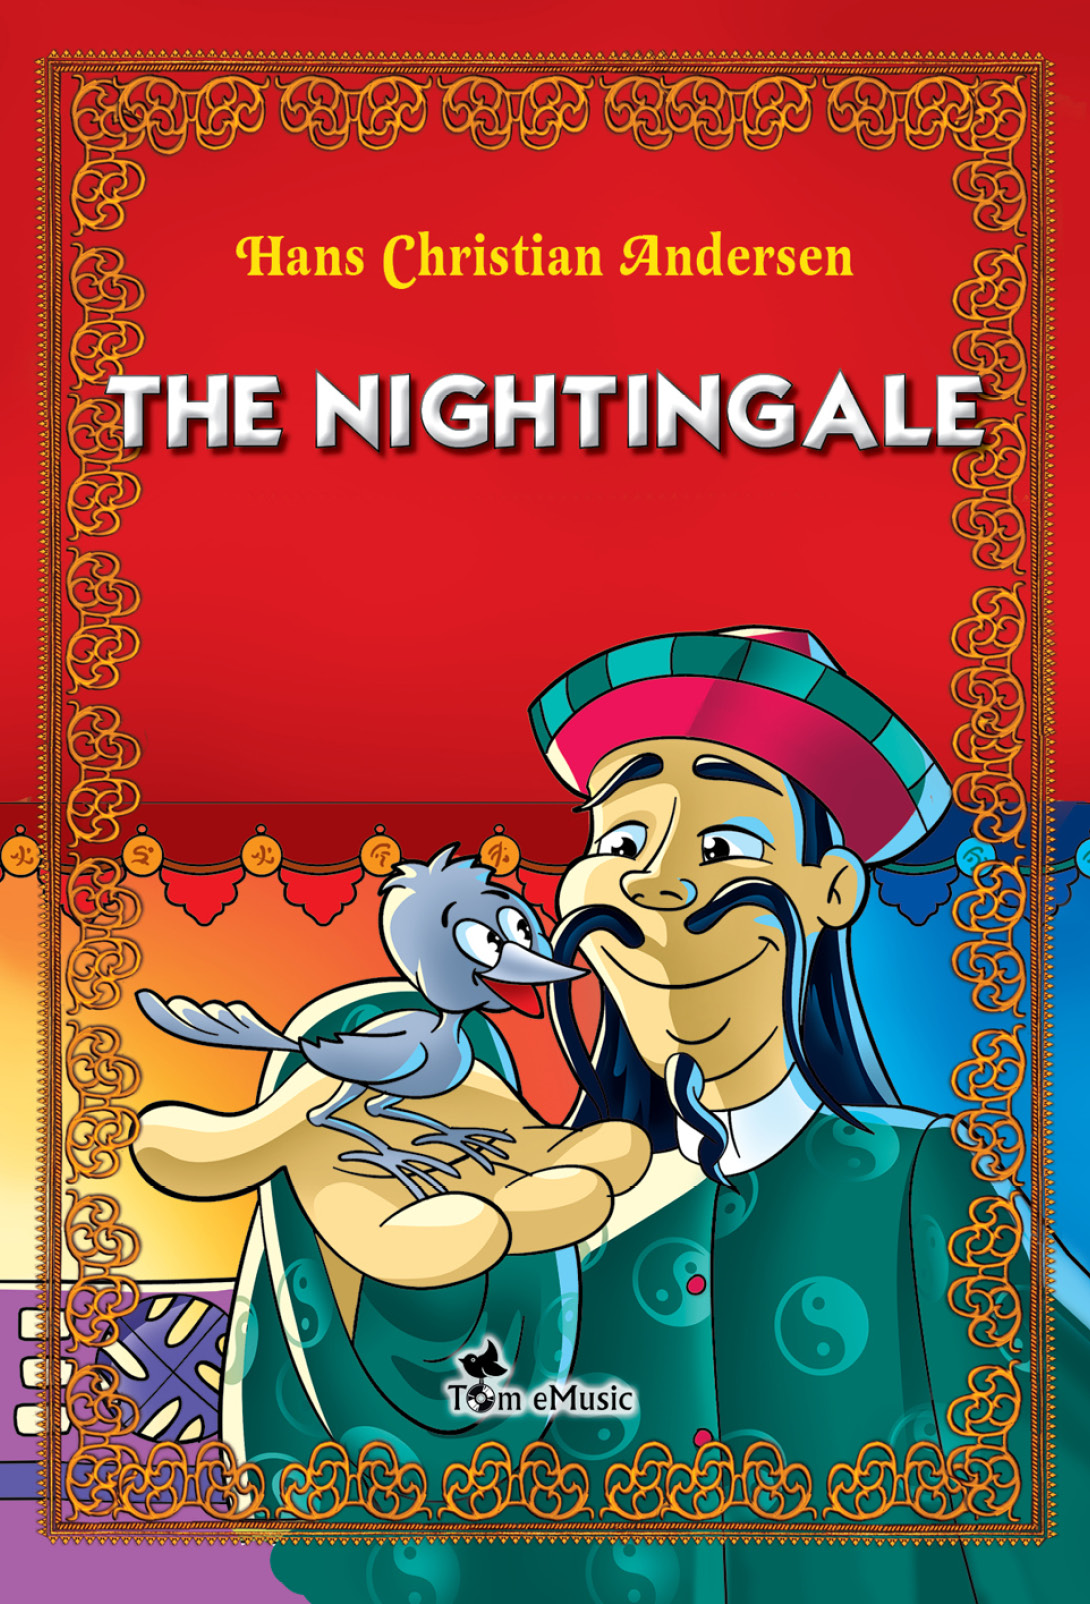 The Nightingale. An Illustrated Fairy Tale by Hans Christian Andersen By: Hans Christian Andersen